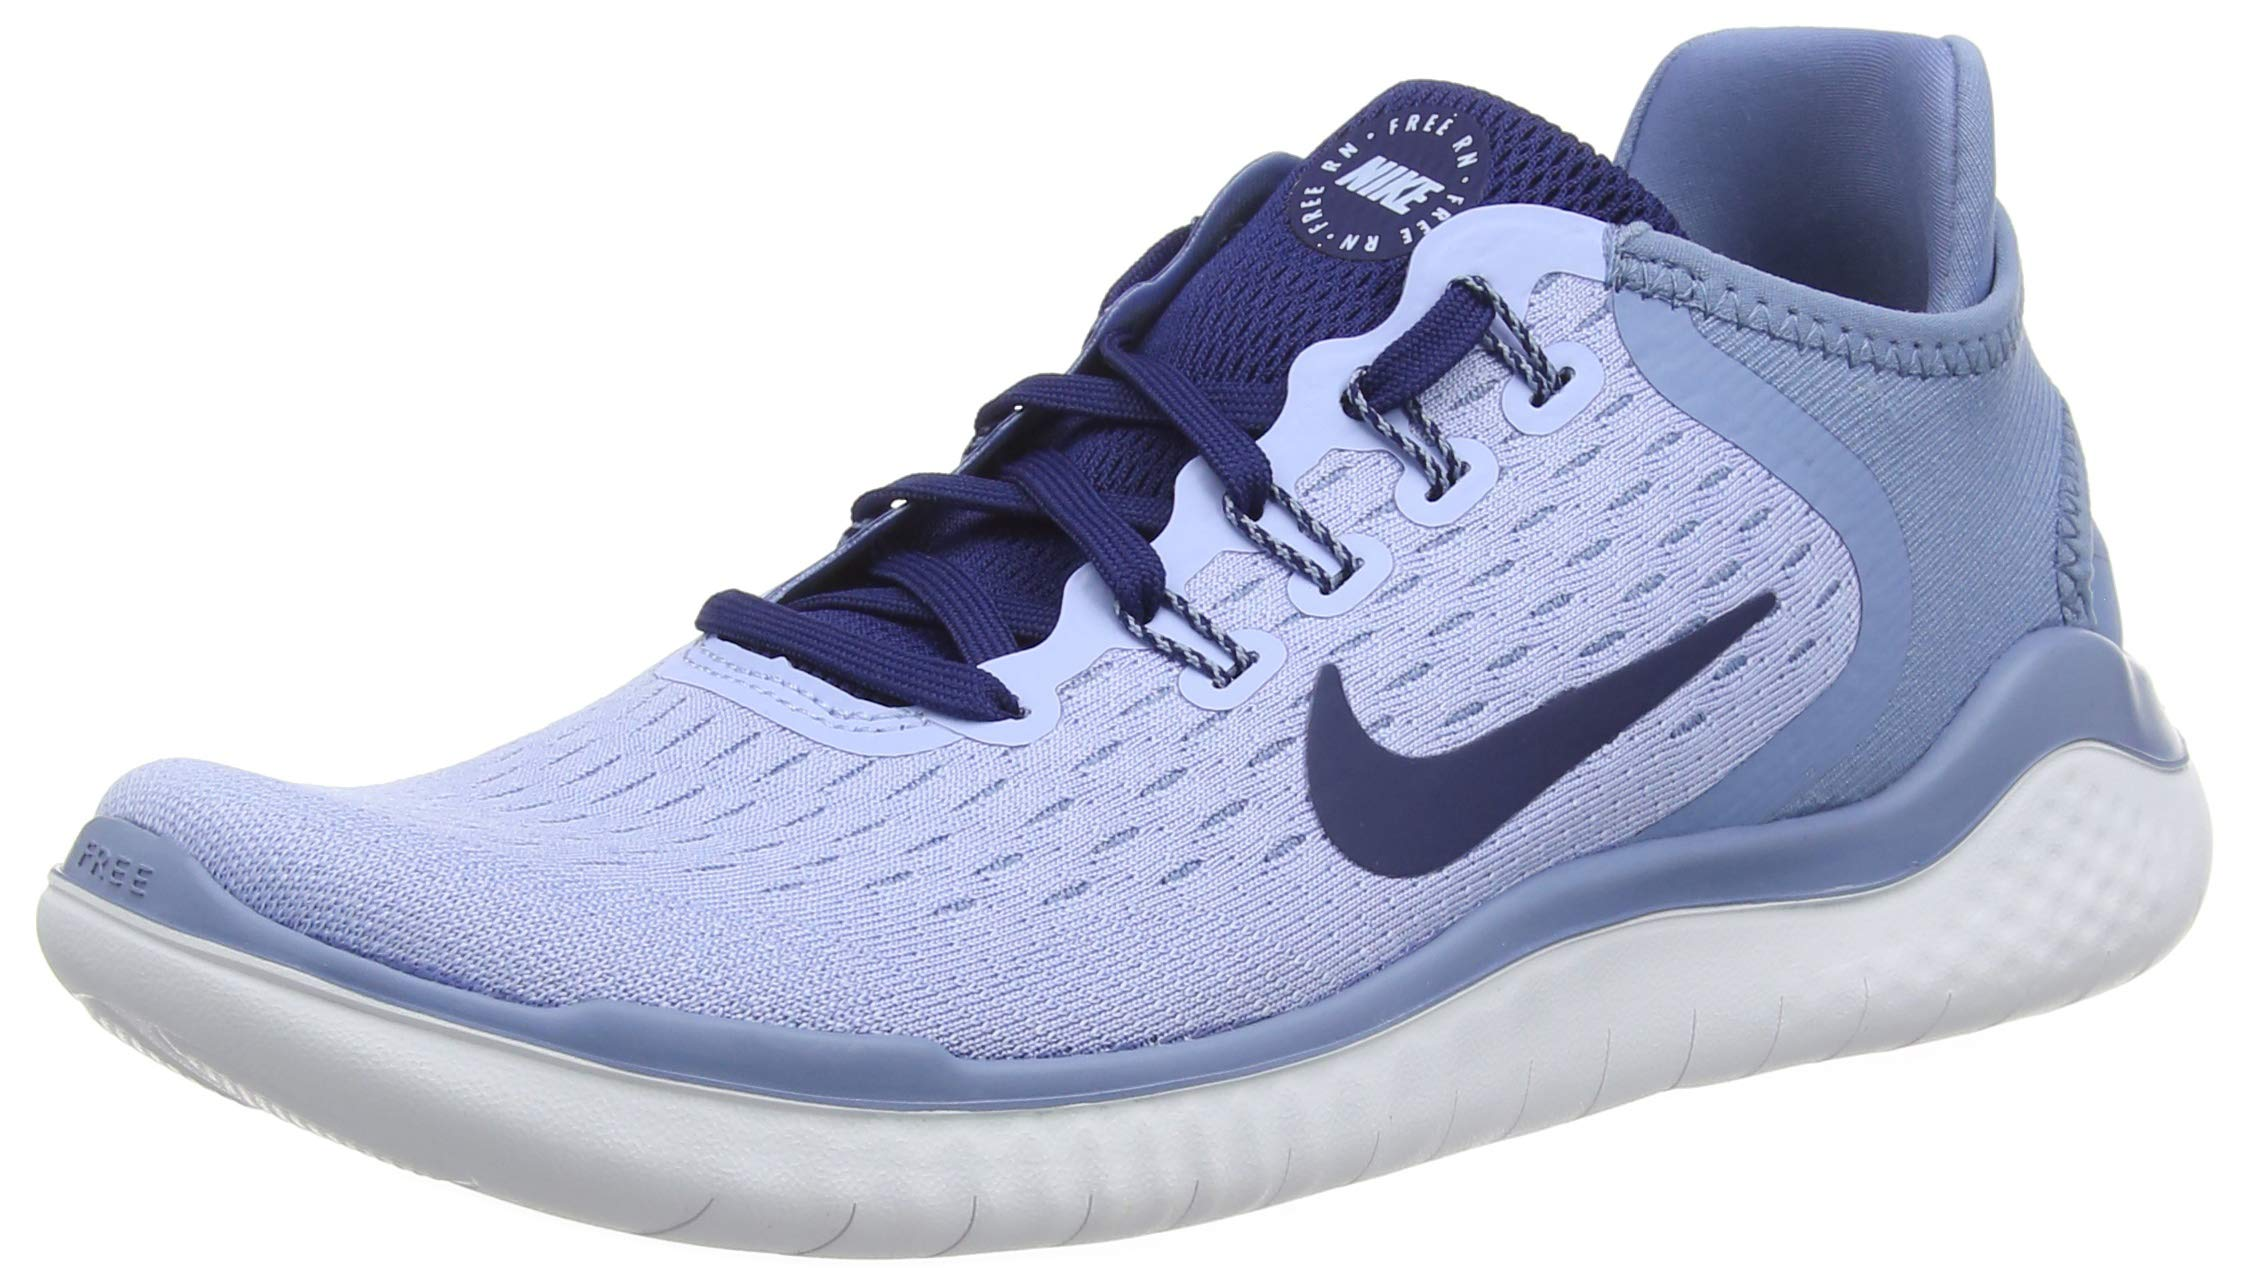 Nike Womens Free Run 2018 Running Shoes (9 B US, Aluminum/Blue Void/Work Blue/White)